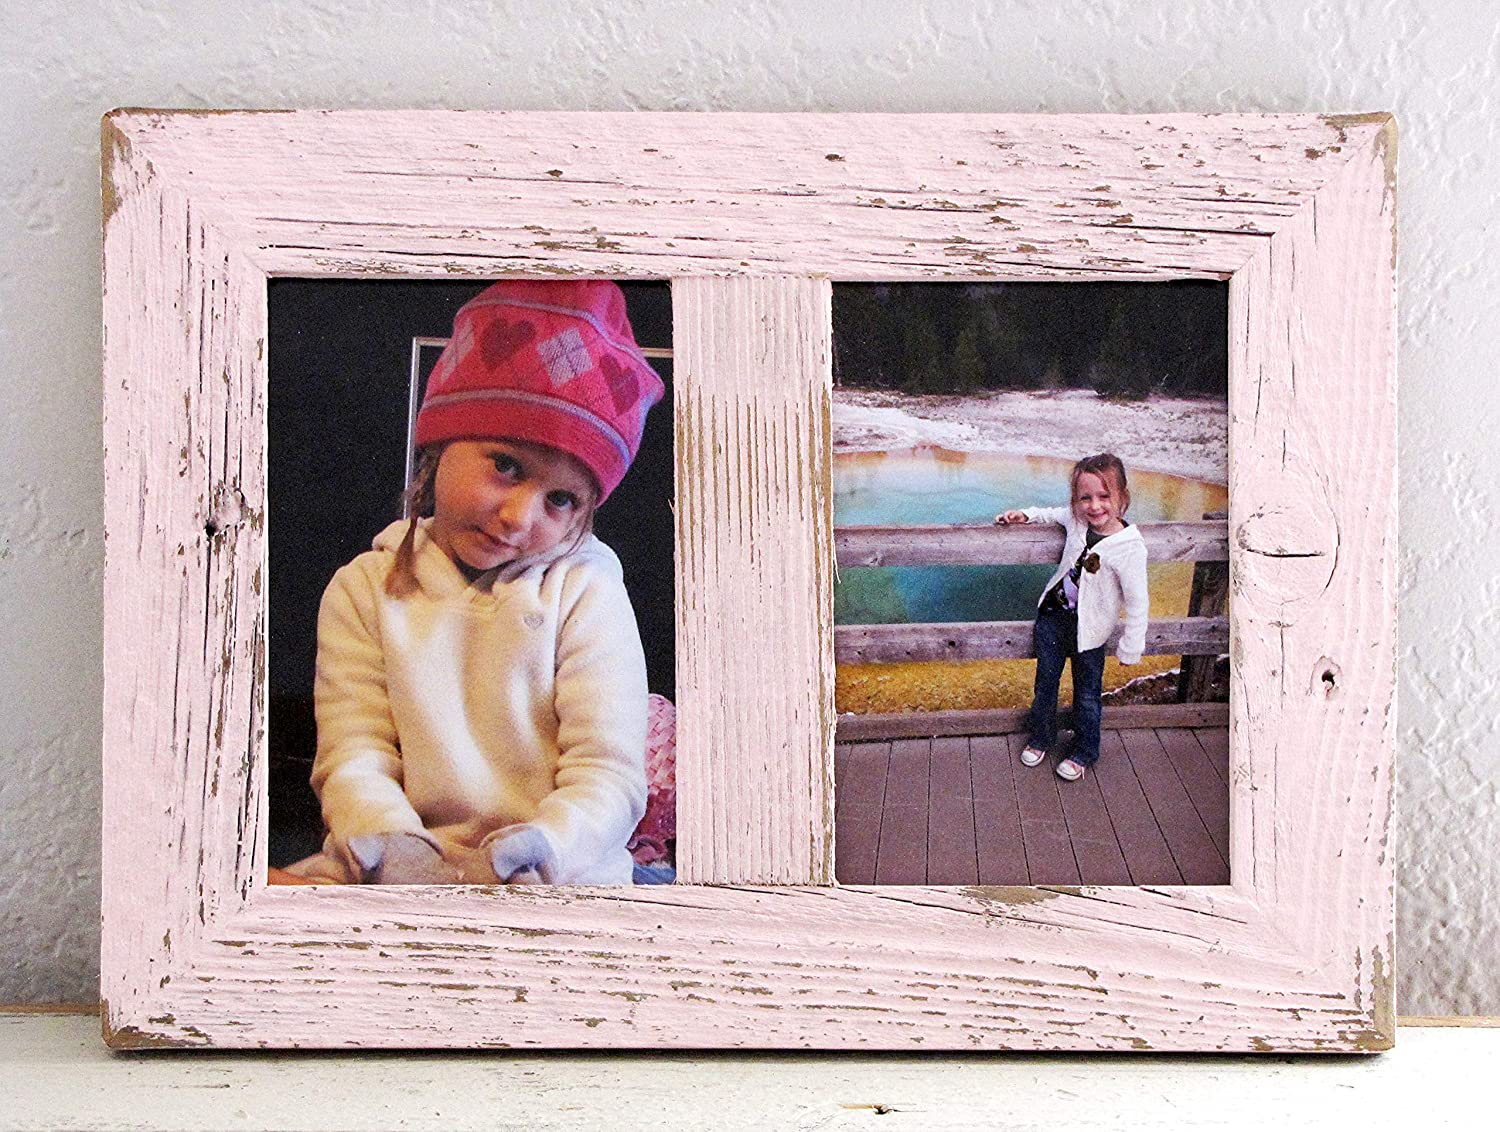 2 Openings 5x7 Wood Rustic Wall Photo Frame Wood Barn Door Picture Frame